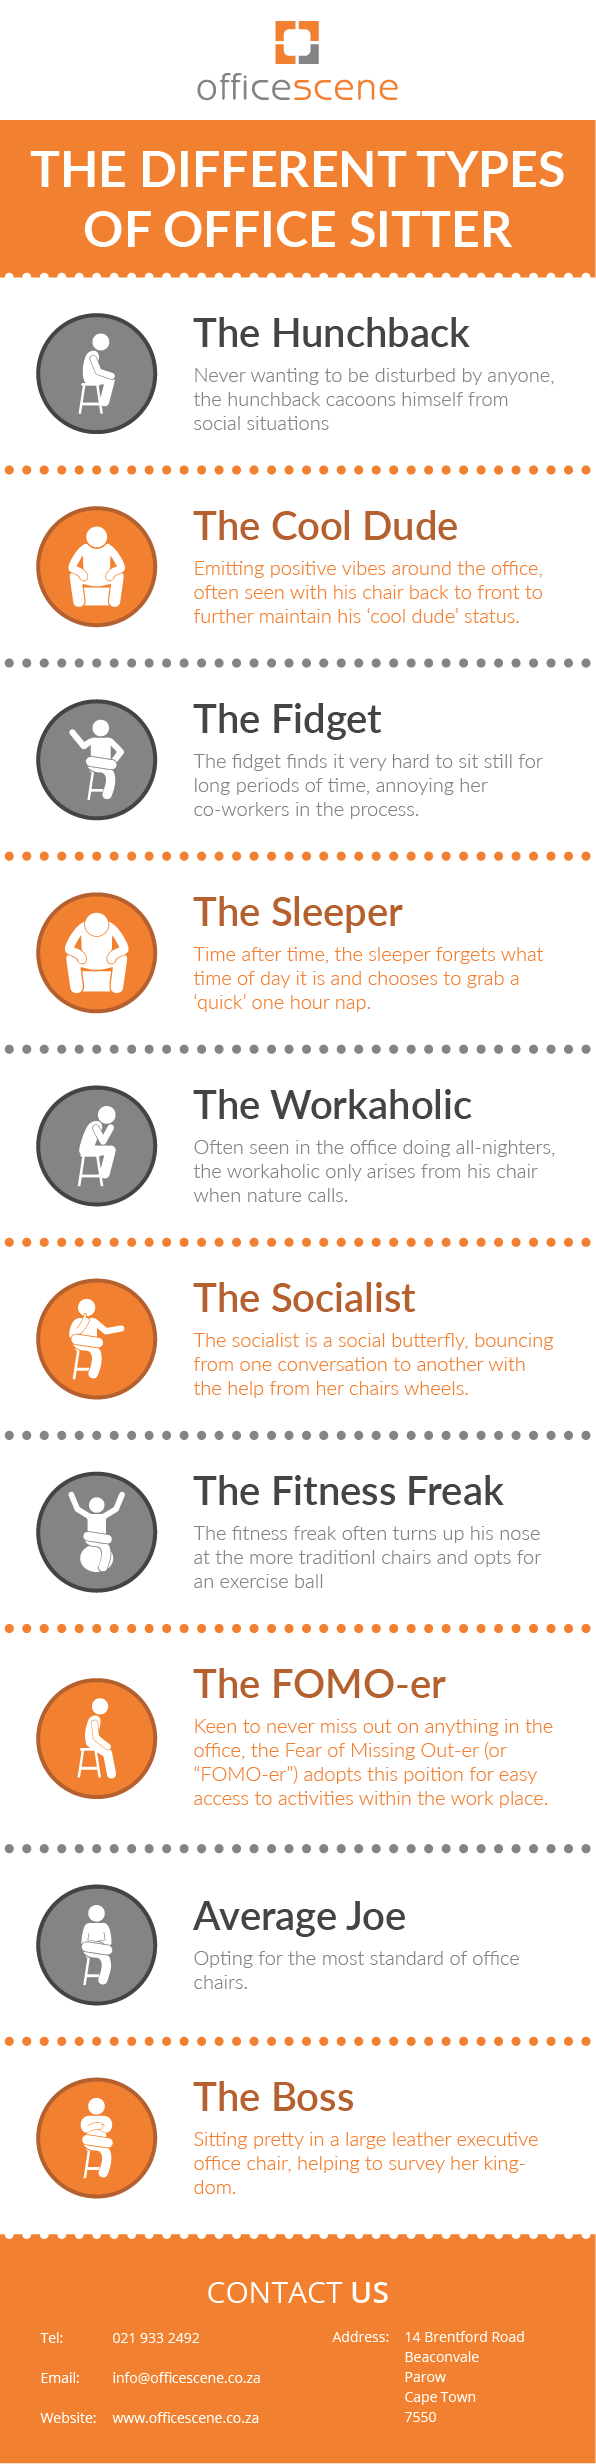 office-scene-The-different-types-of-office-sitter-infographic-01